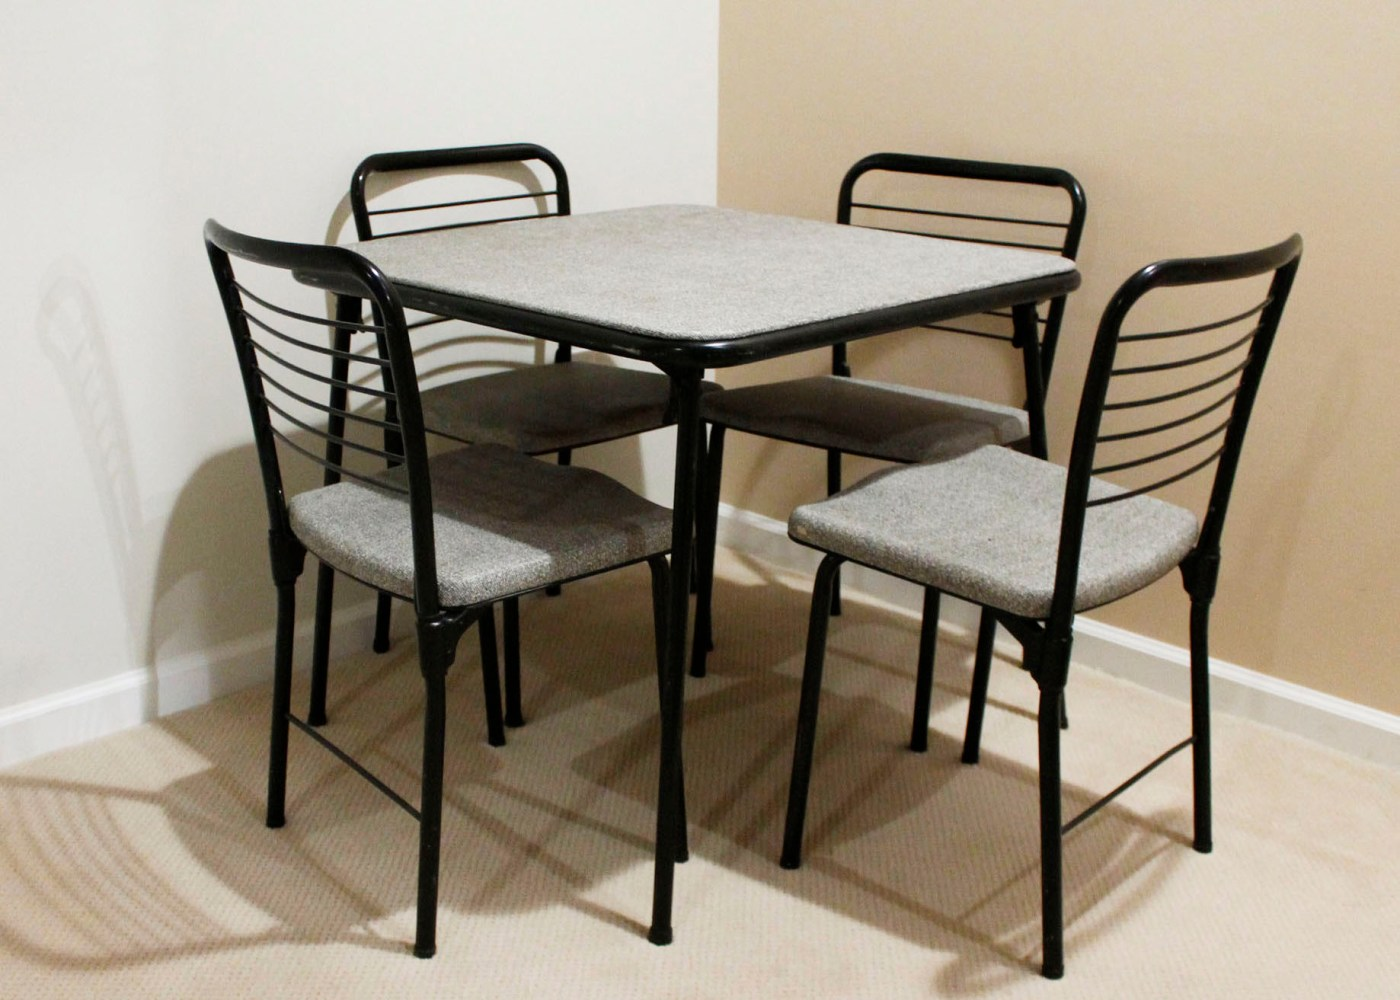 Cosco Card Table And Chairs Vintage Cosco Fashion Fold Mid Century Card Table And